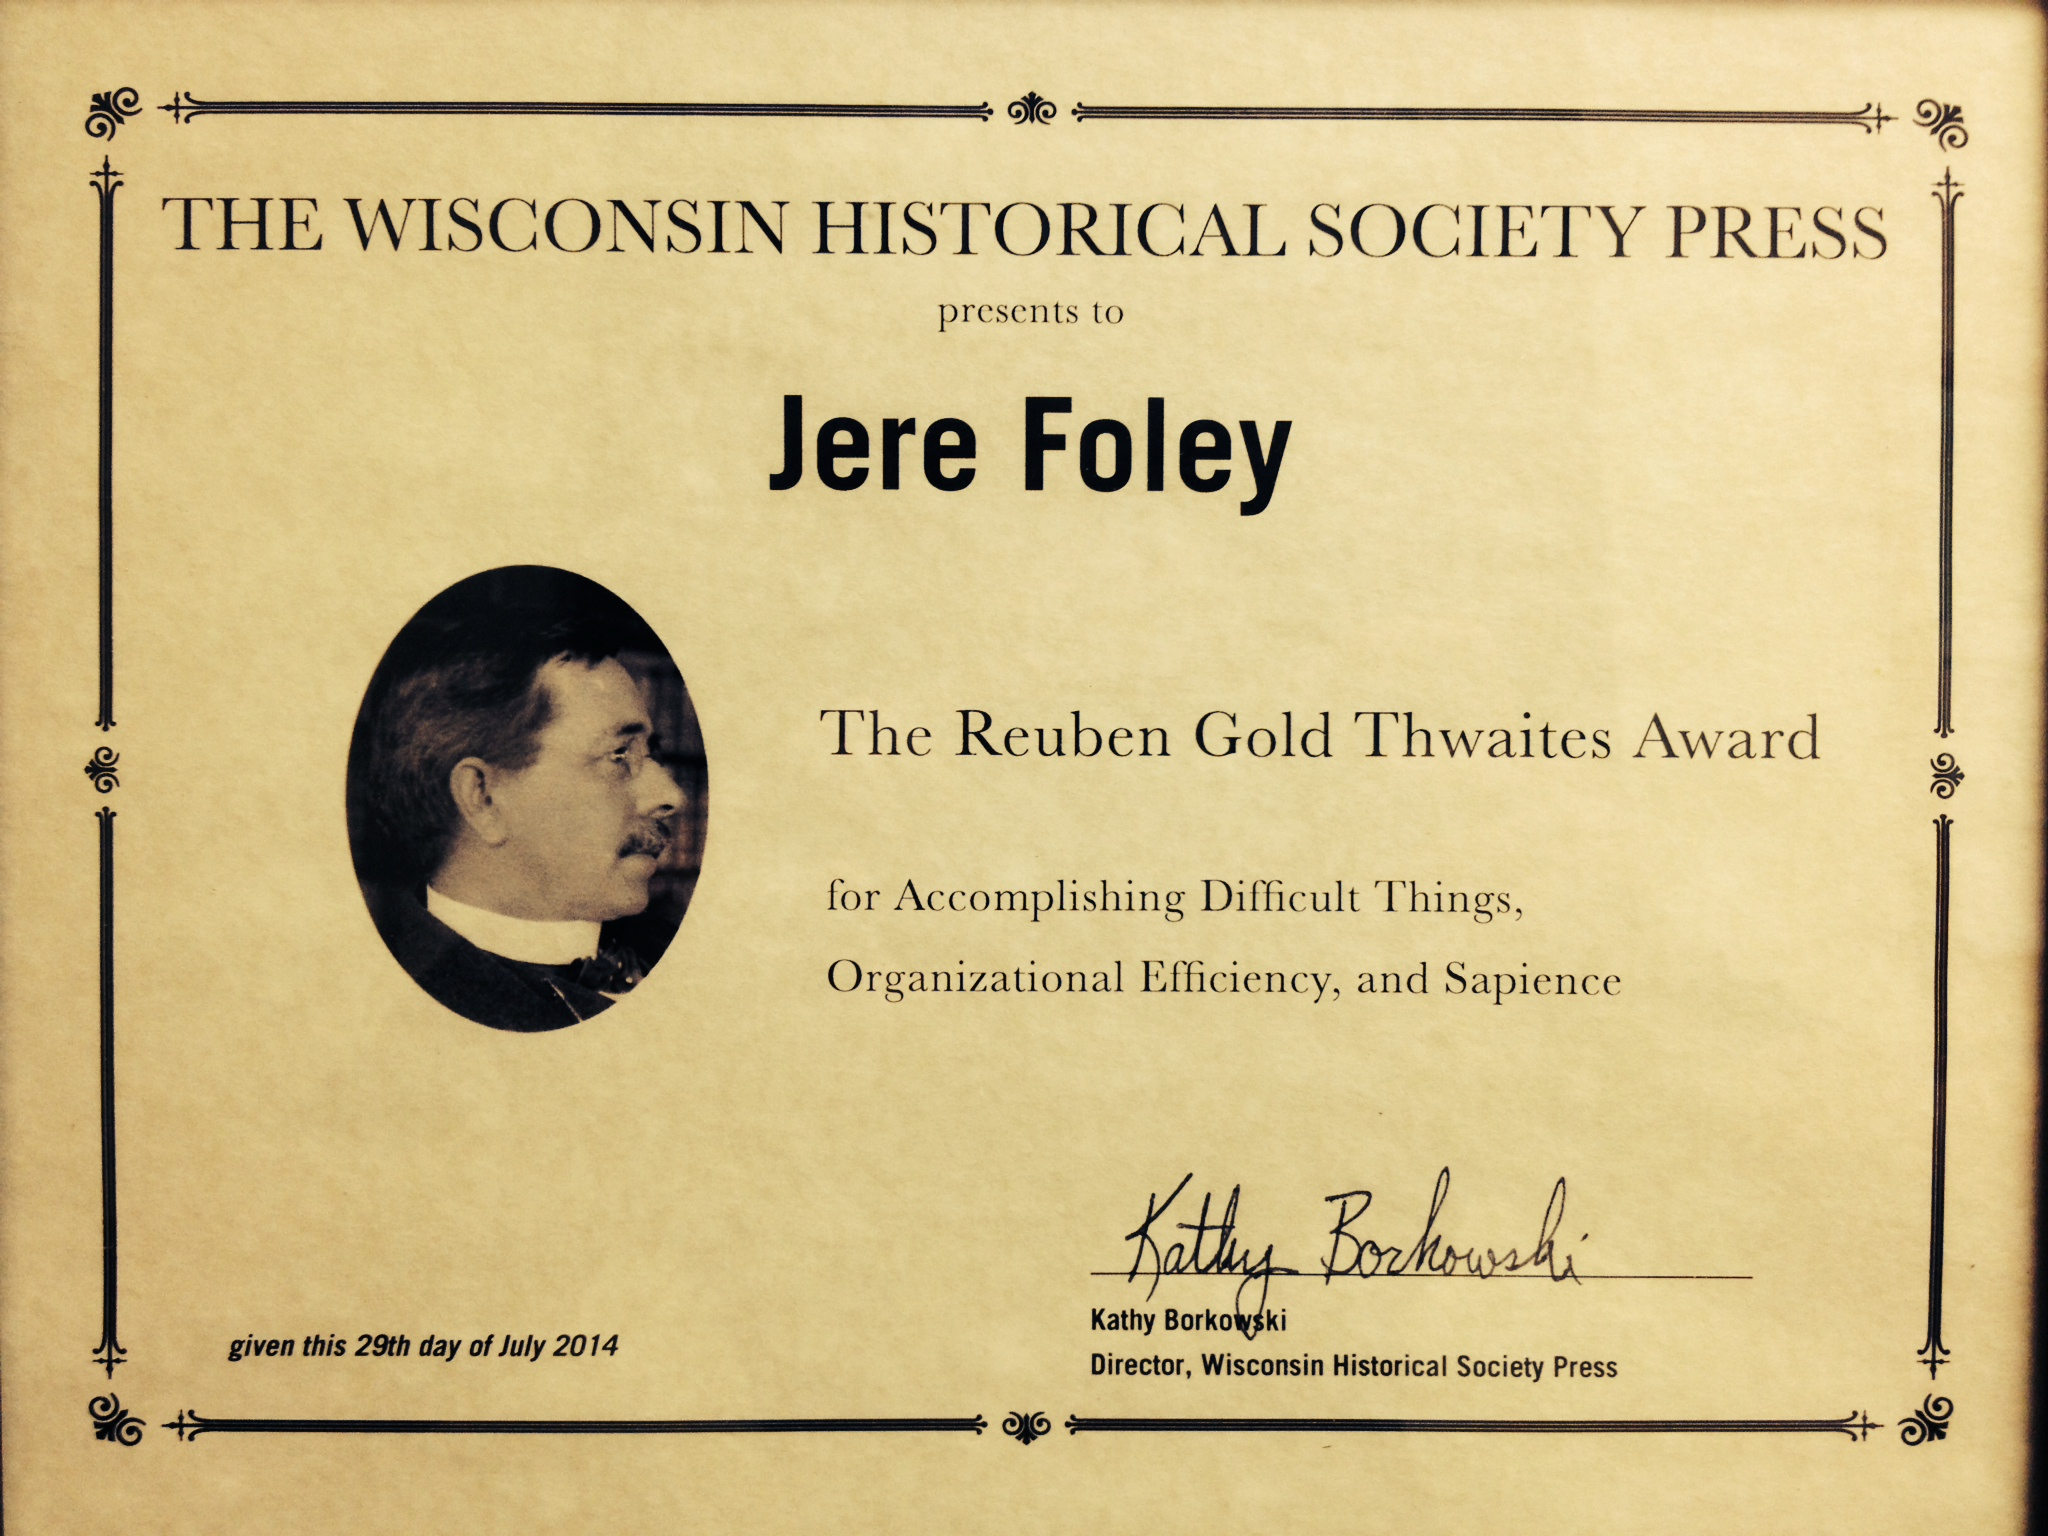 The Reuben Gold Thwaites Award